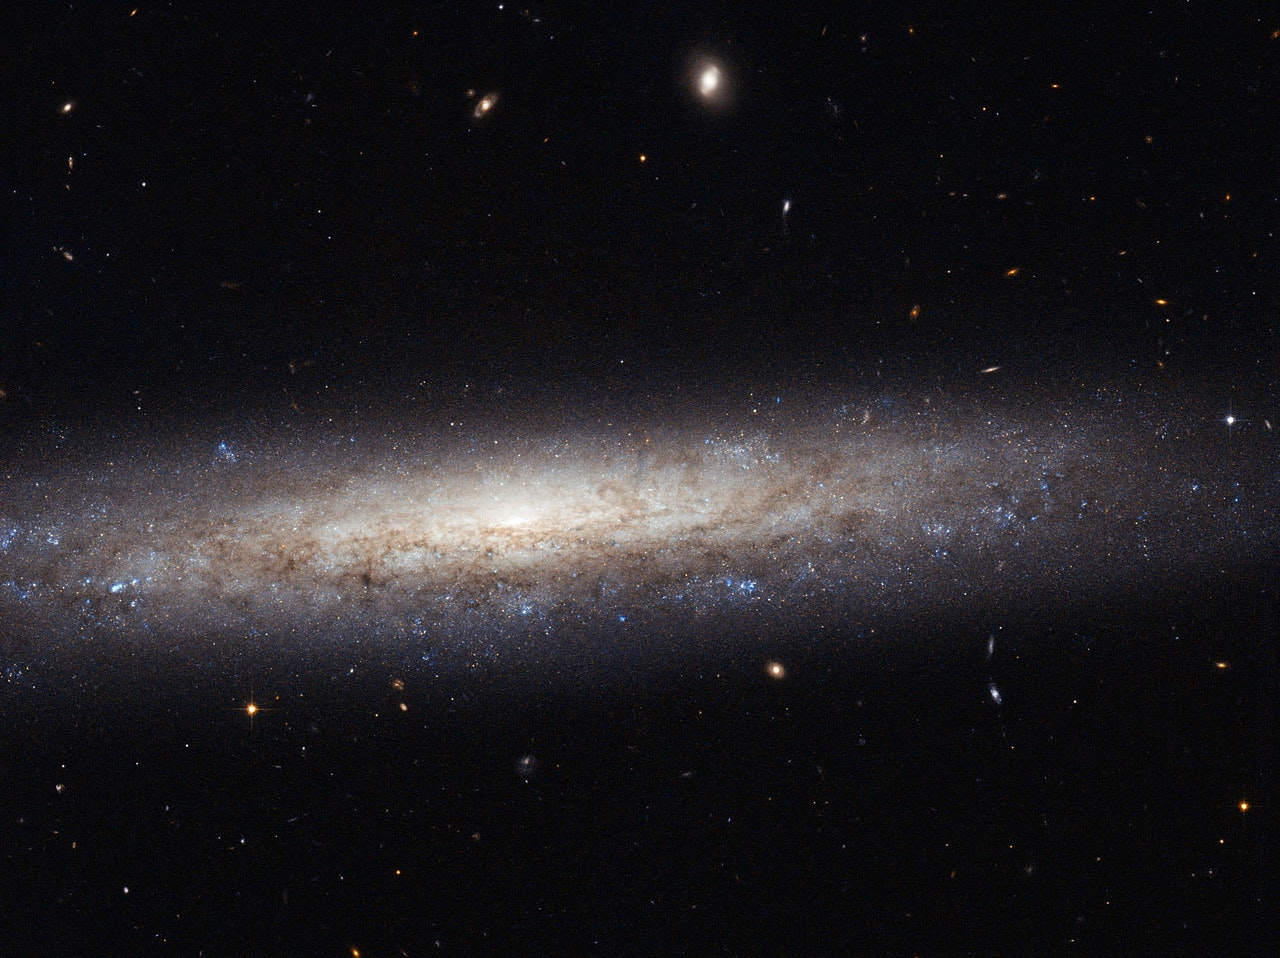 A dusty spiral in Virgo, the direction of sky in which lies newly discovered ultra-faint Virgo 1.